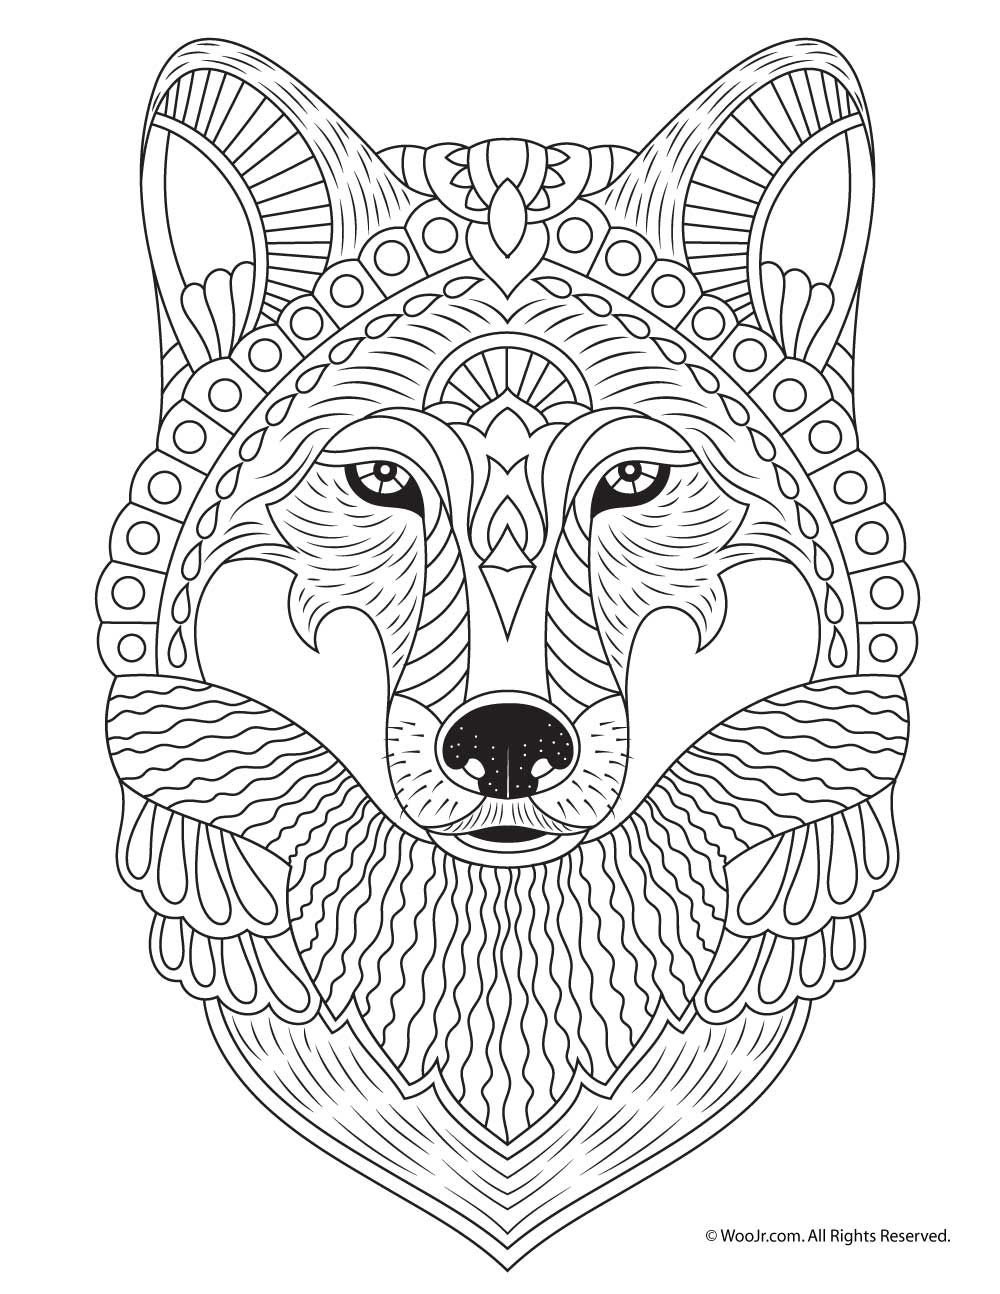 Wolf Adult Coloring Page (With images) Animal coloring